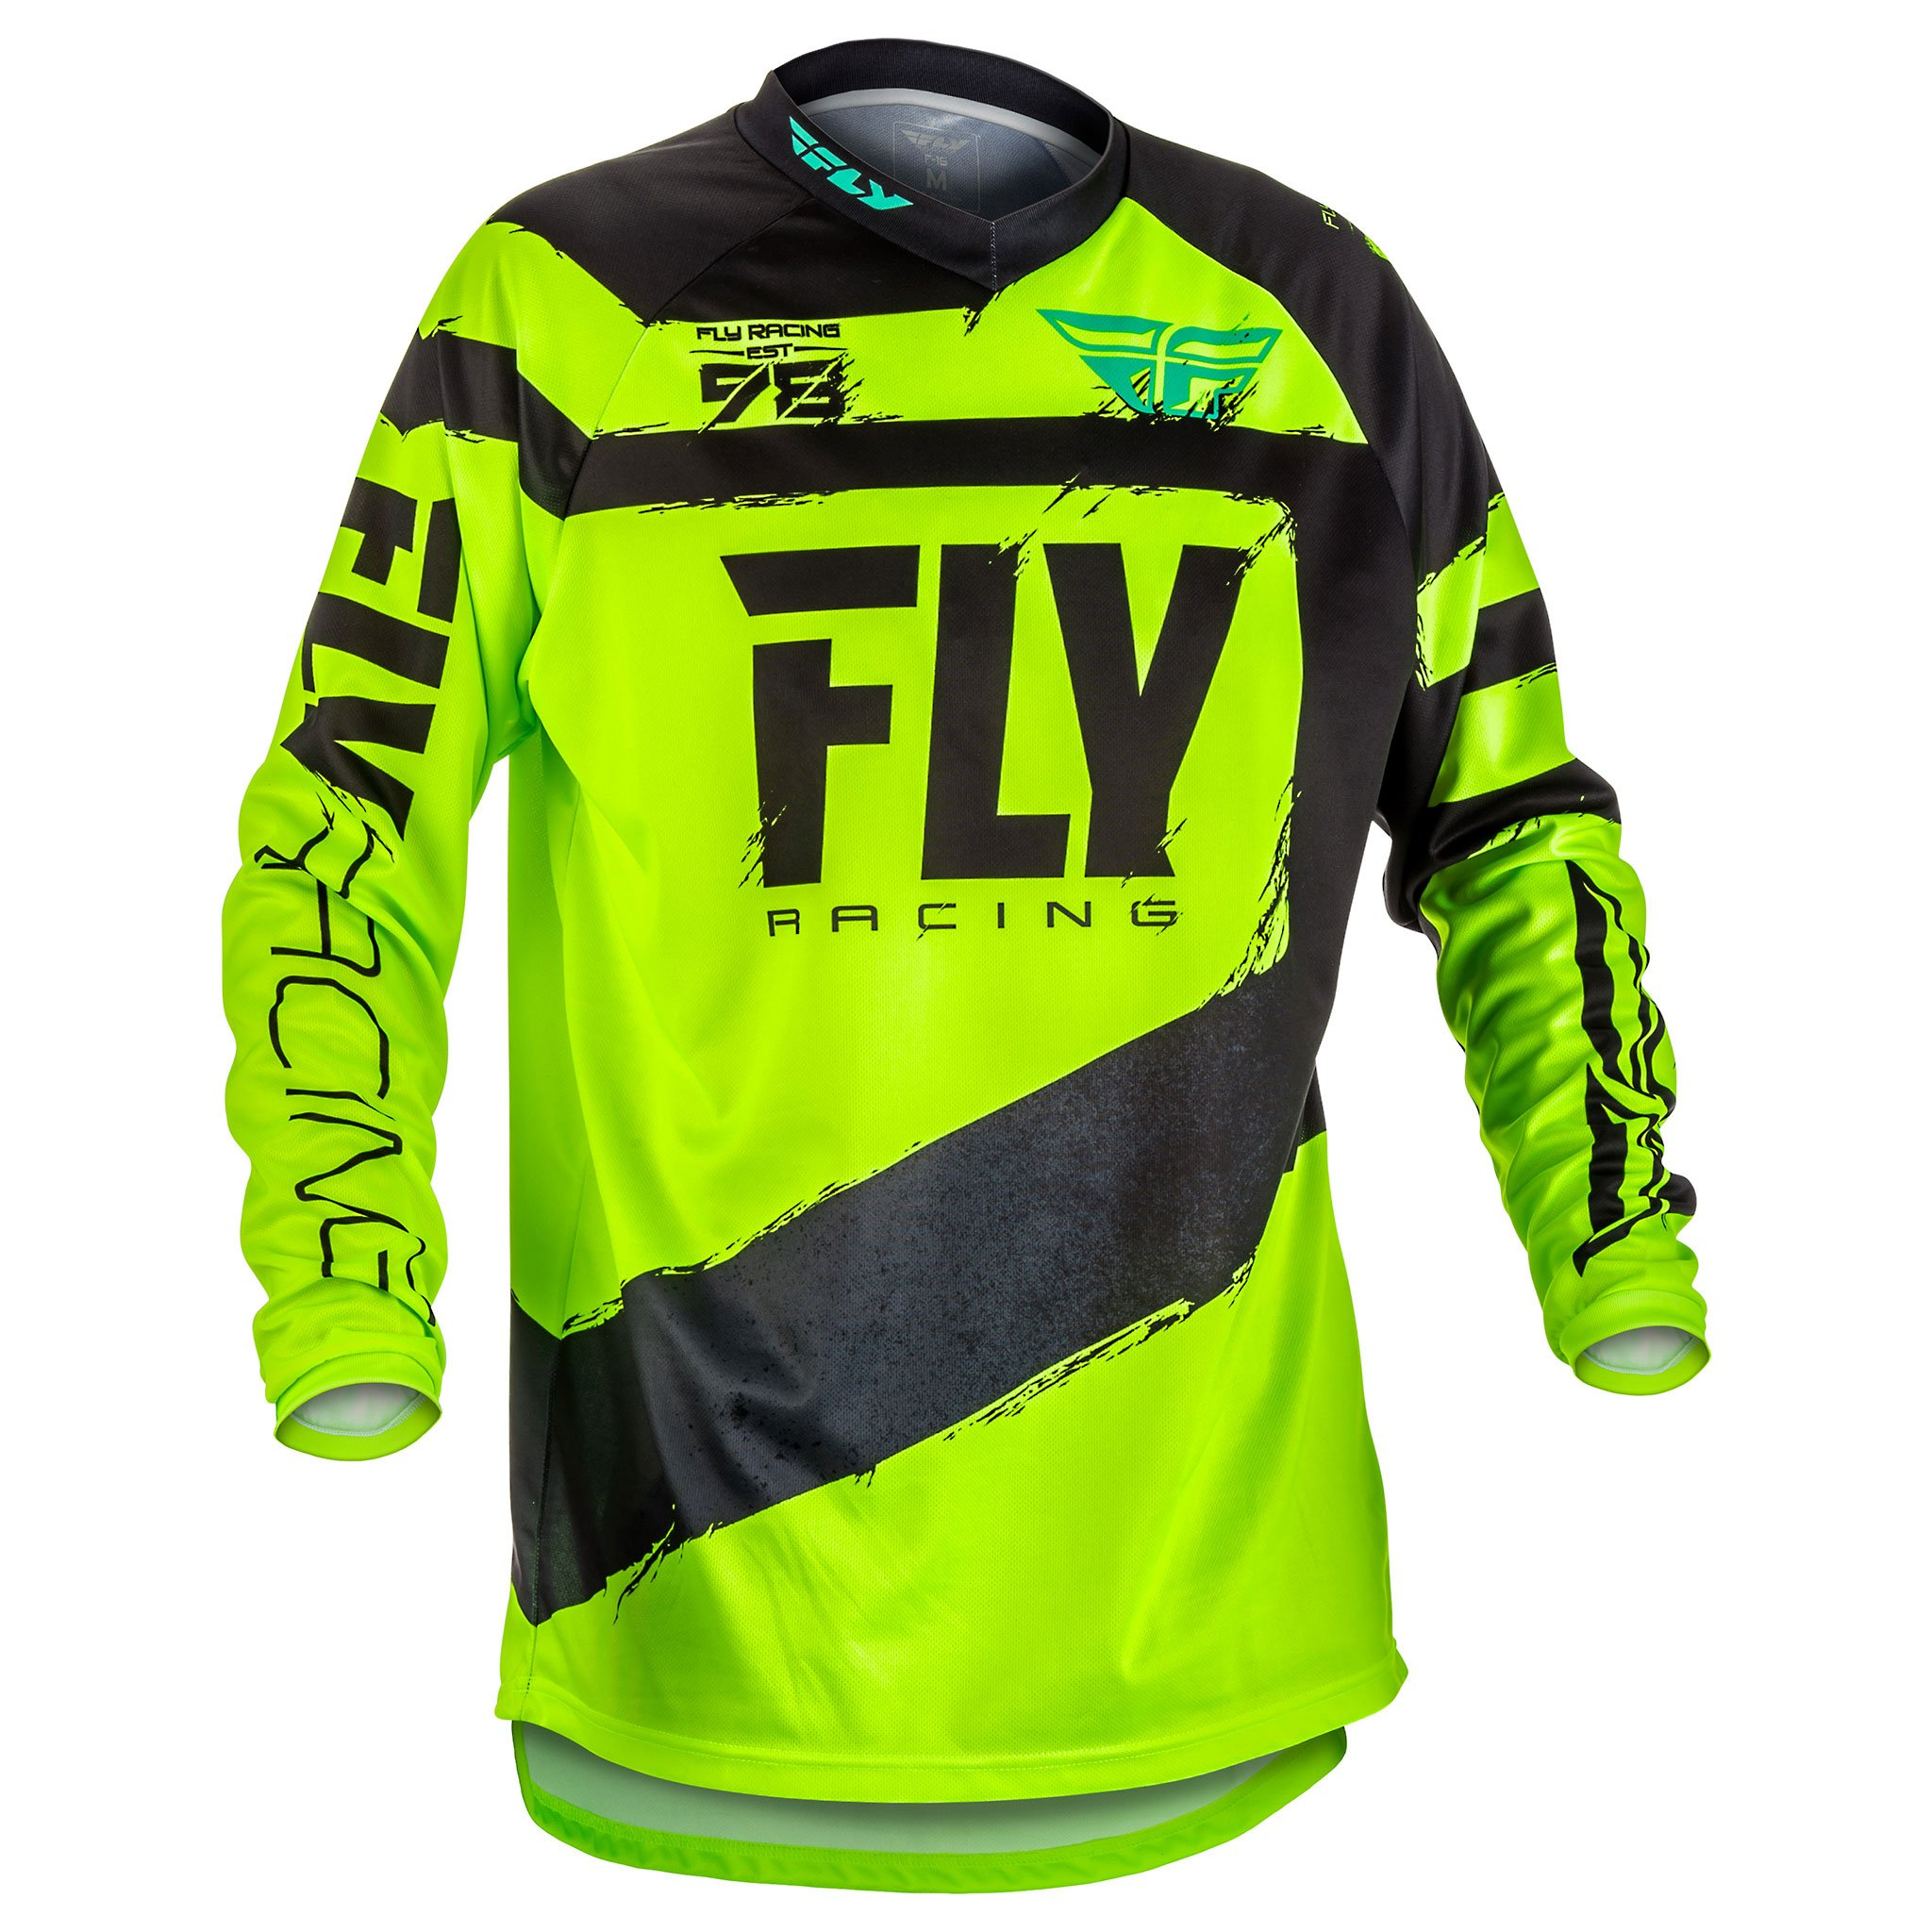 Fly Racing Men's Jersey (Black/Hi-Vis, Youth X-Large)